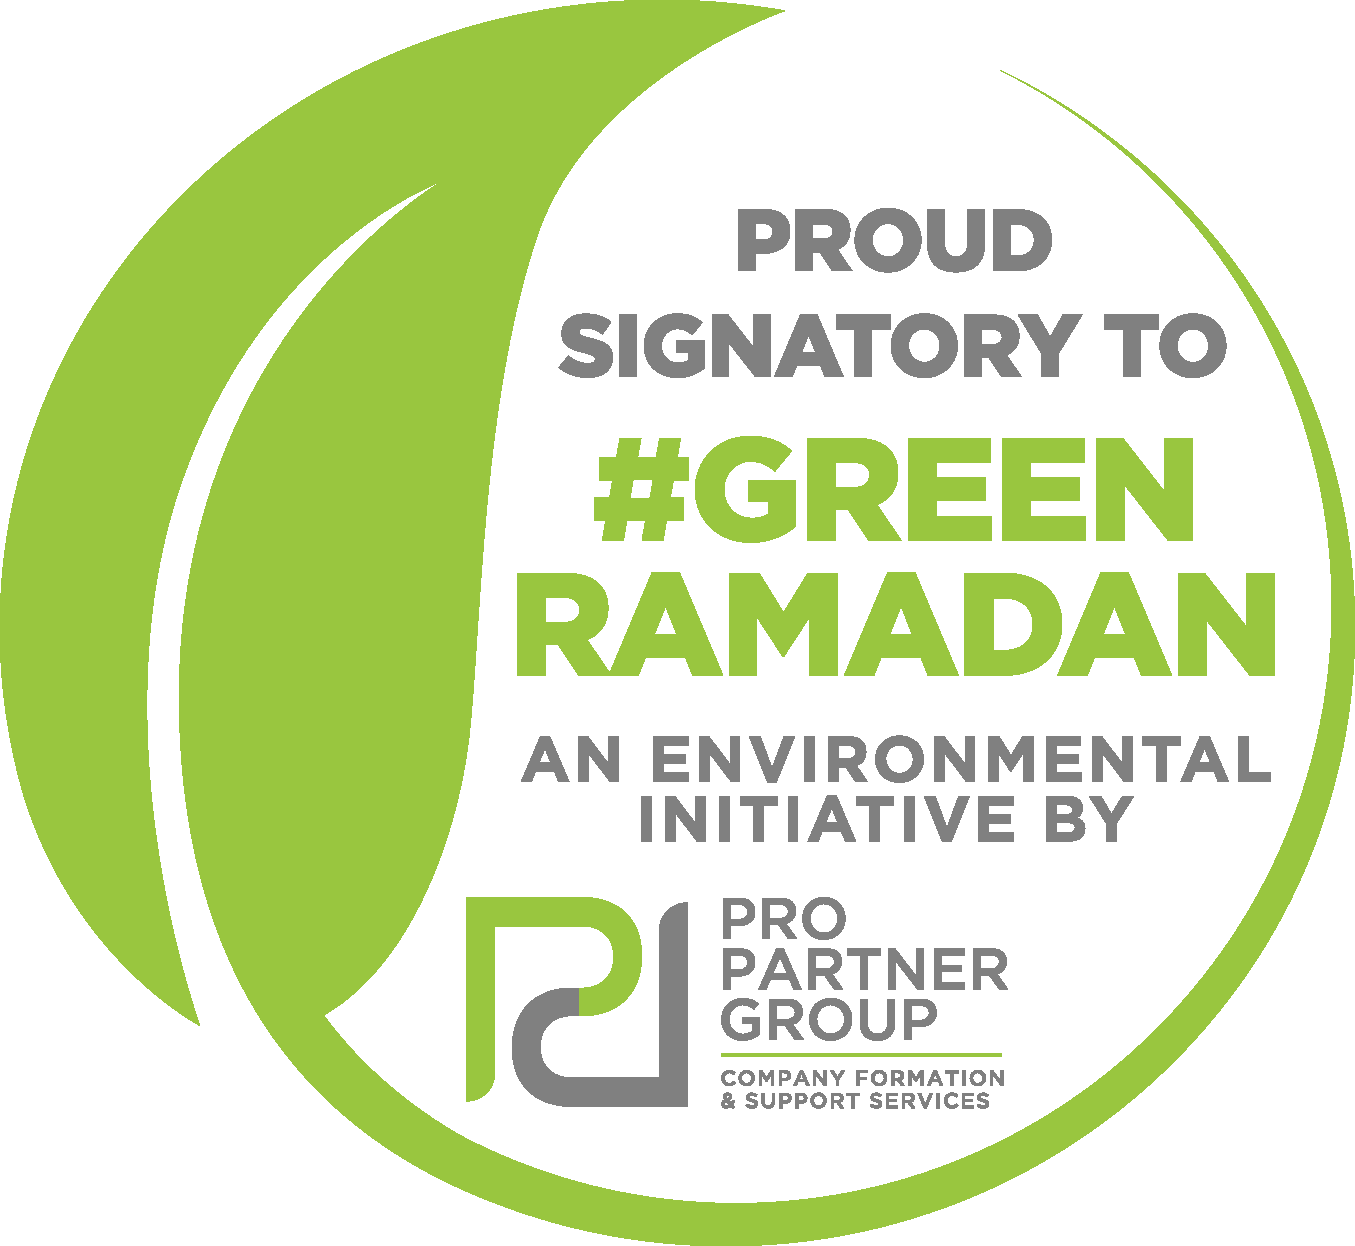 Green Ramadan PRO Partner Group